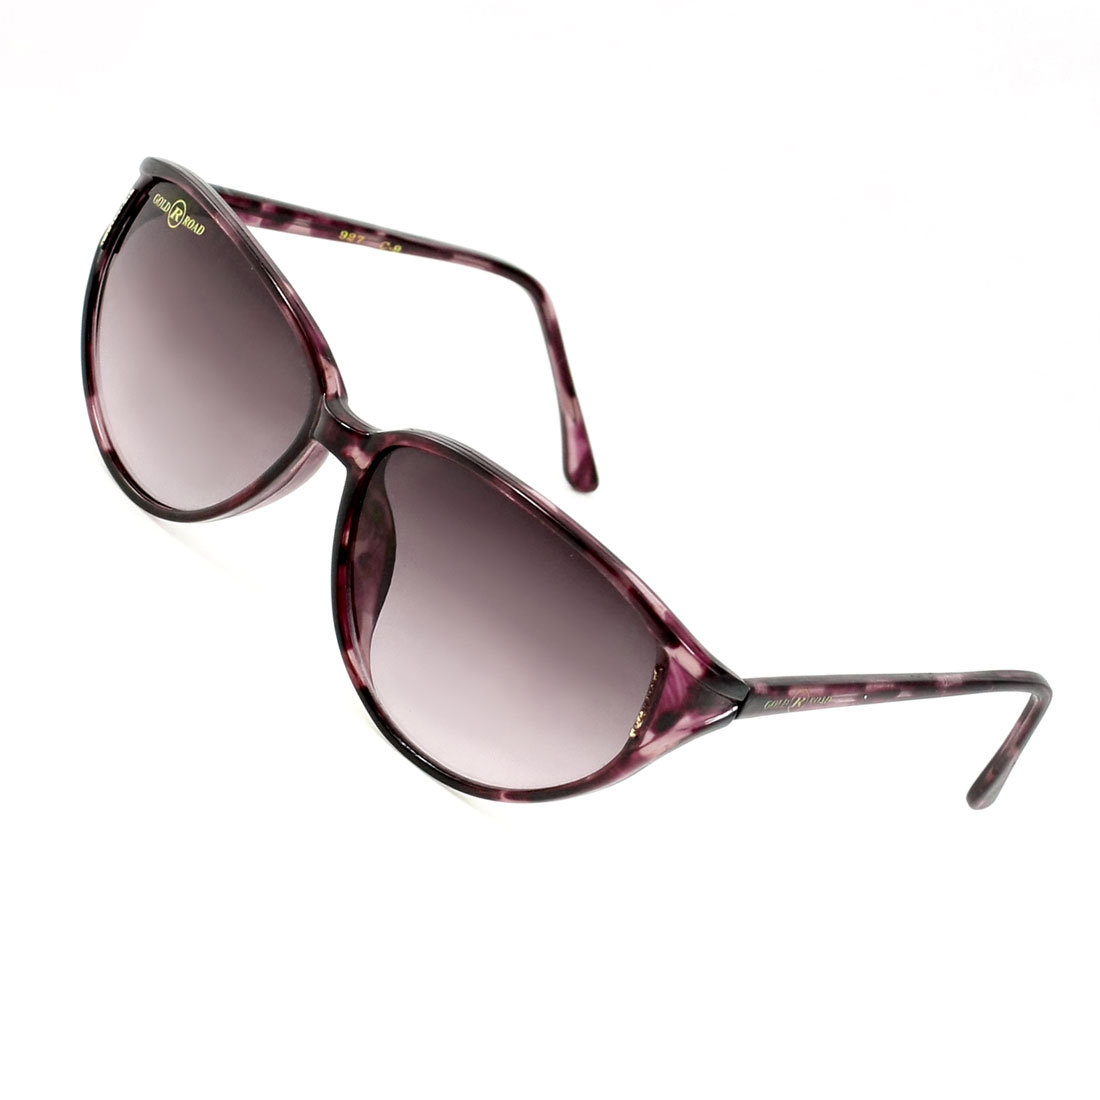 Woman Teardrop Lens Burgundy Full Frame Single Bridge Sunglasses Glasses